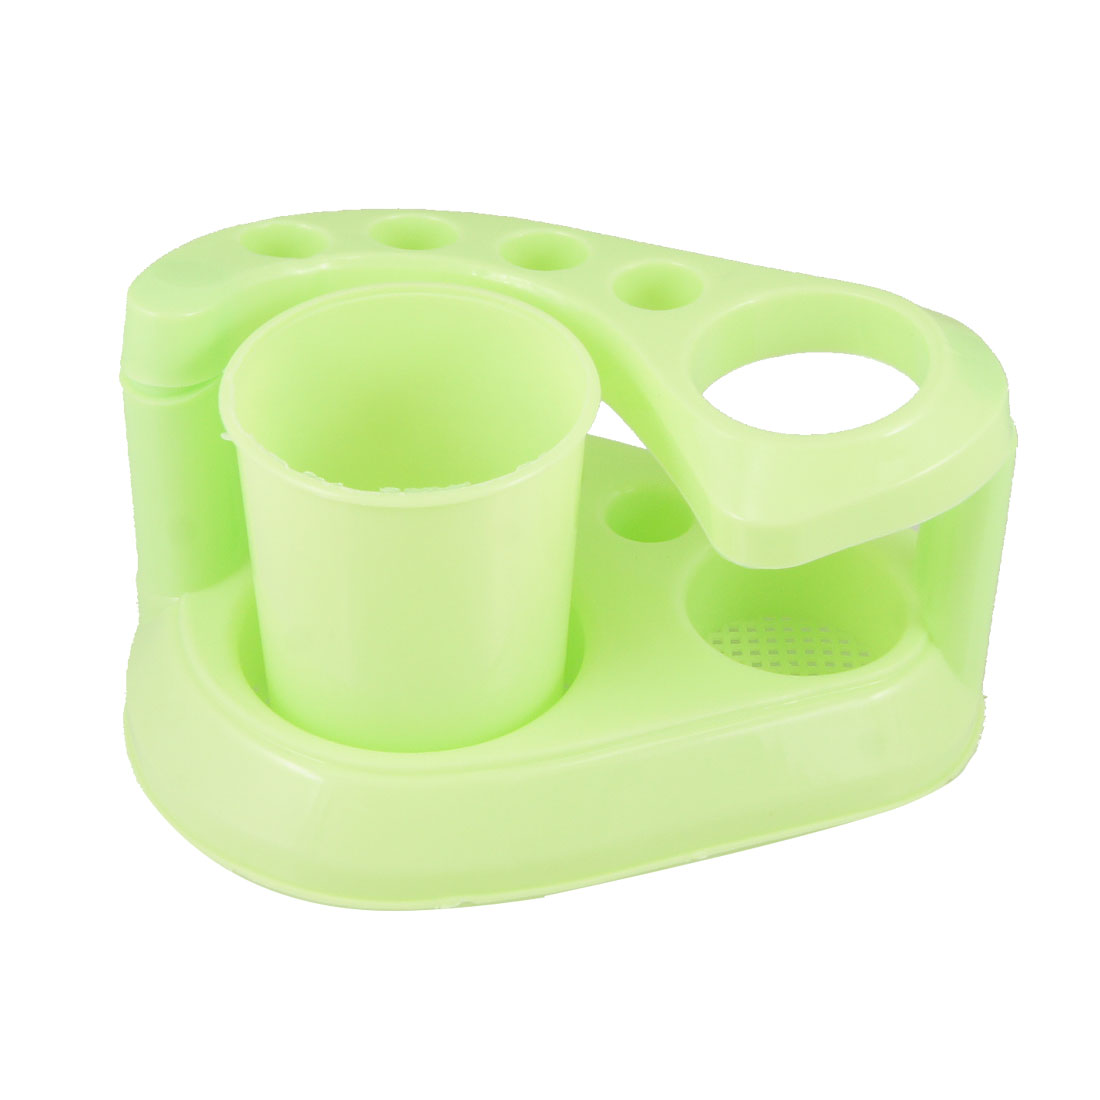 Washroom Mesh Bottom Toothbrush Holder Rack Bracket Green